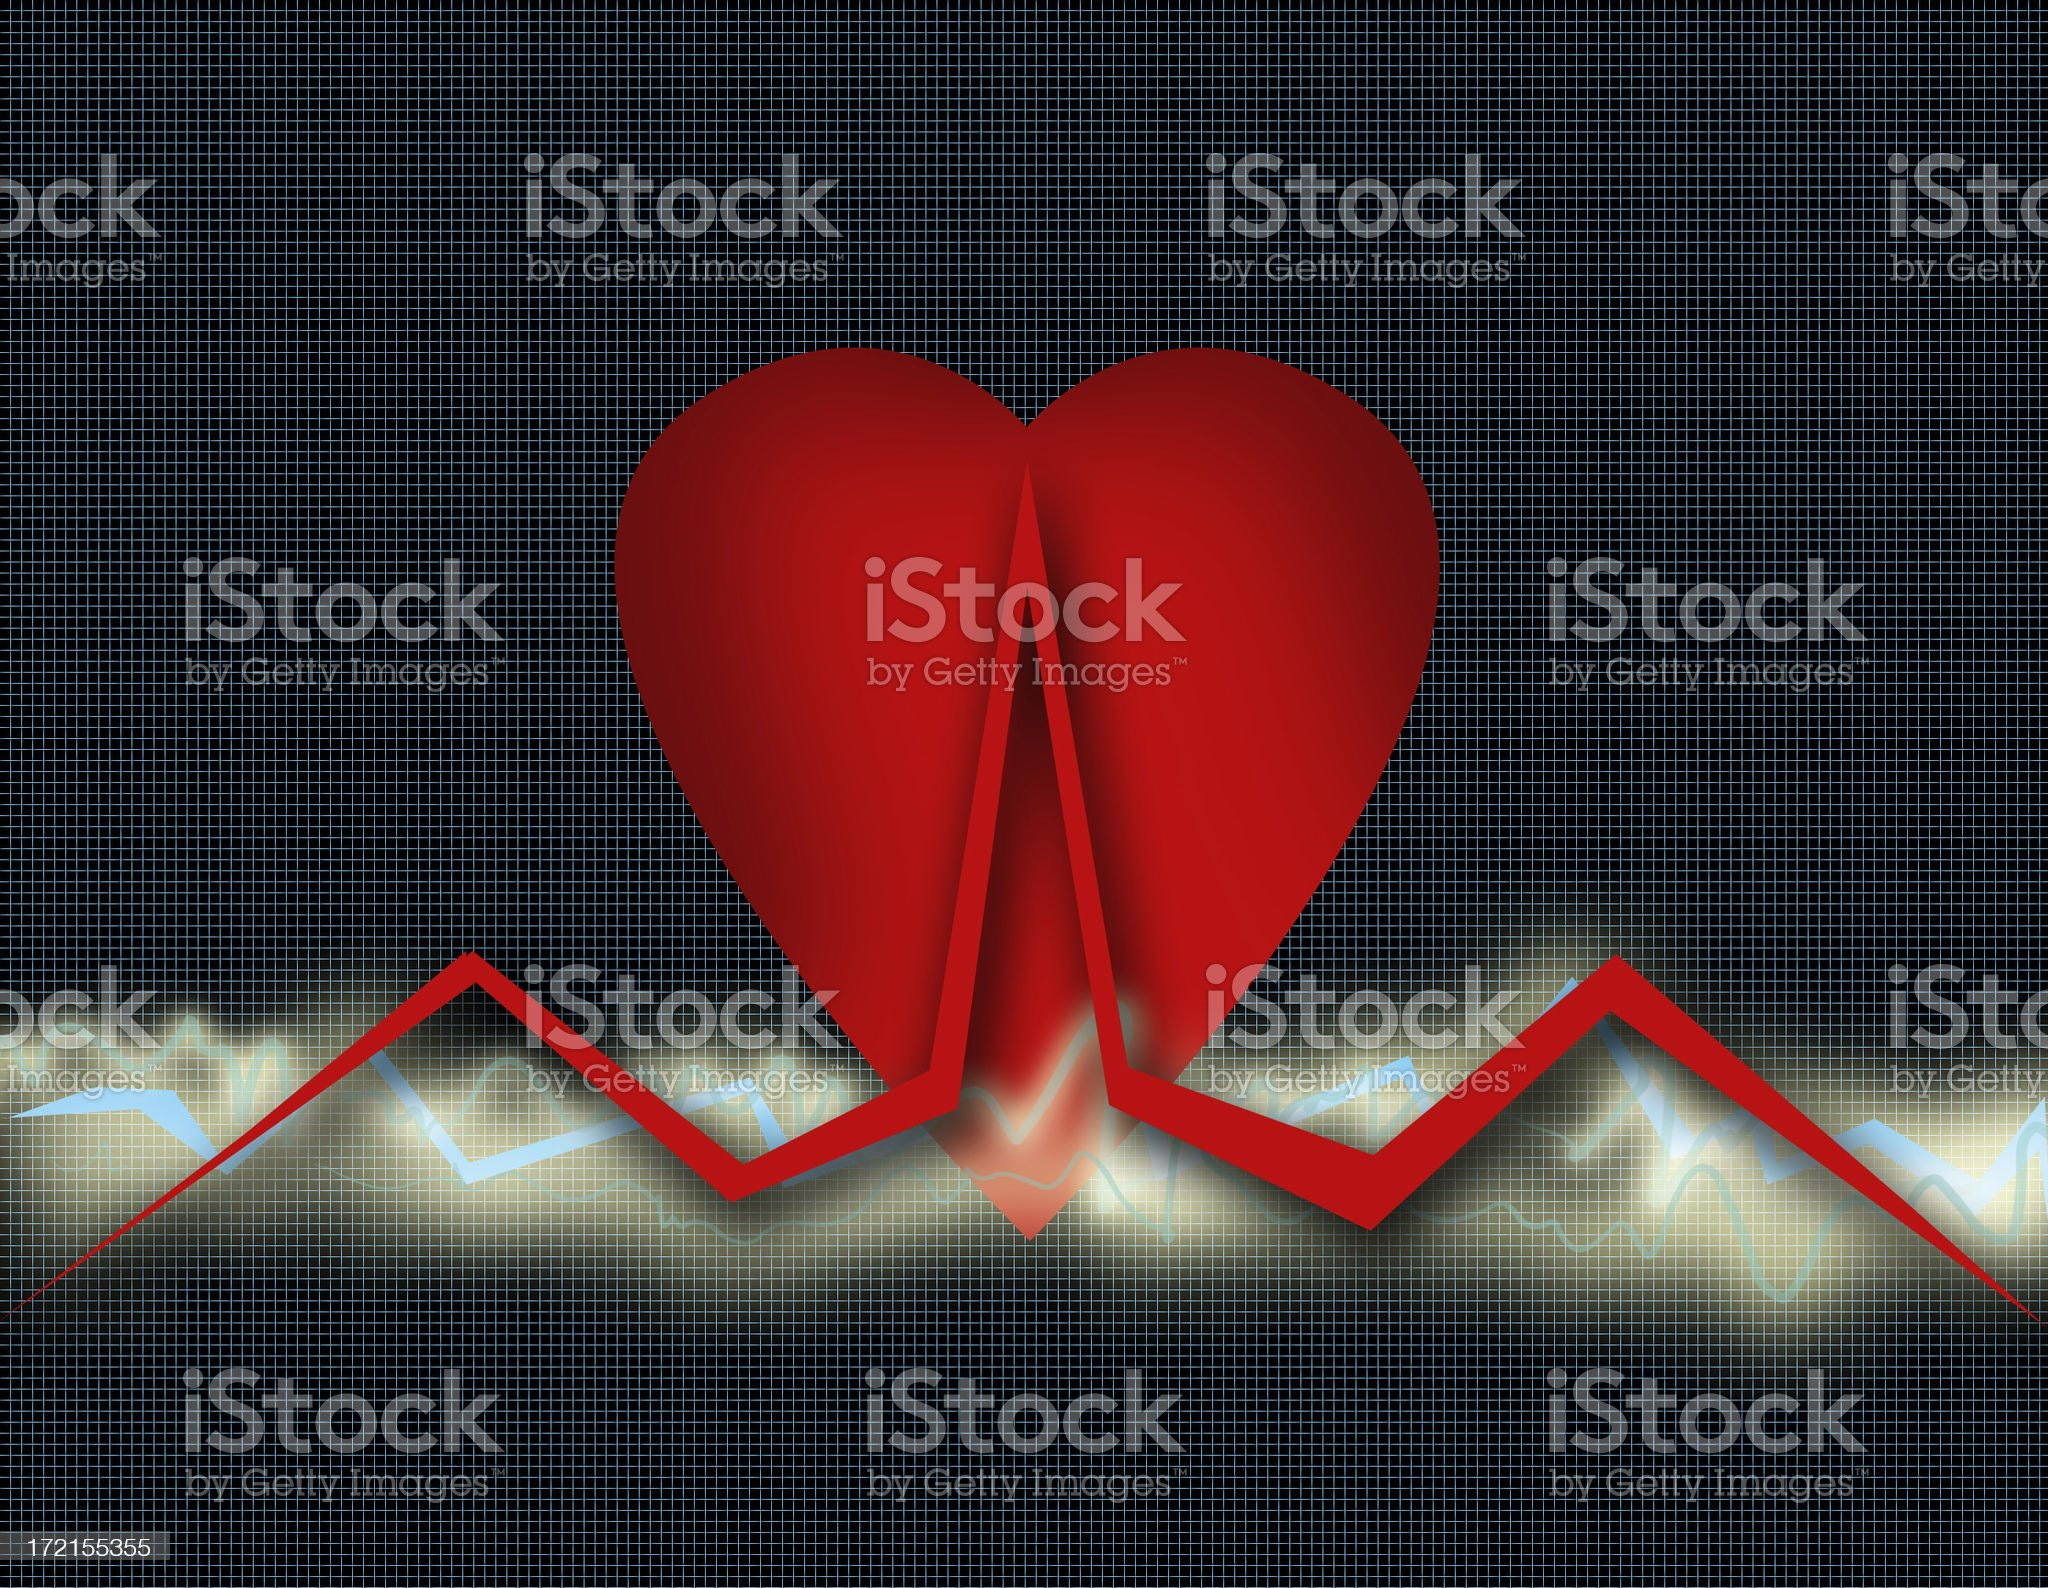 Cardio Healthcare - Heart Health Care Grid  (Part 1) royalty-free stock photo